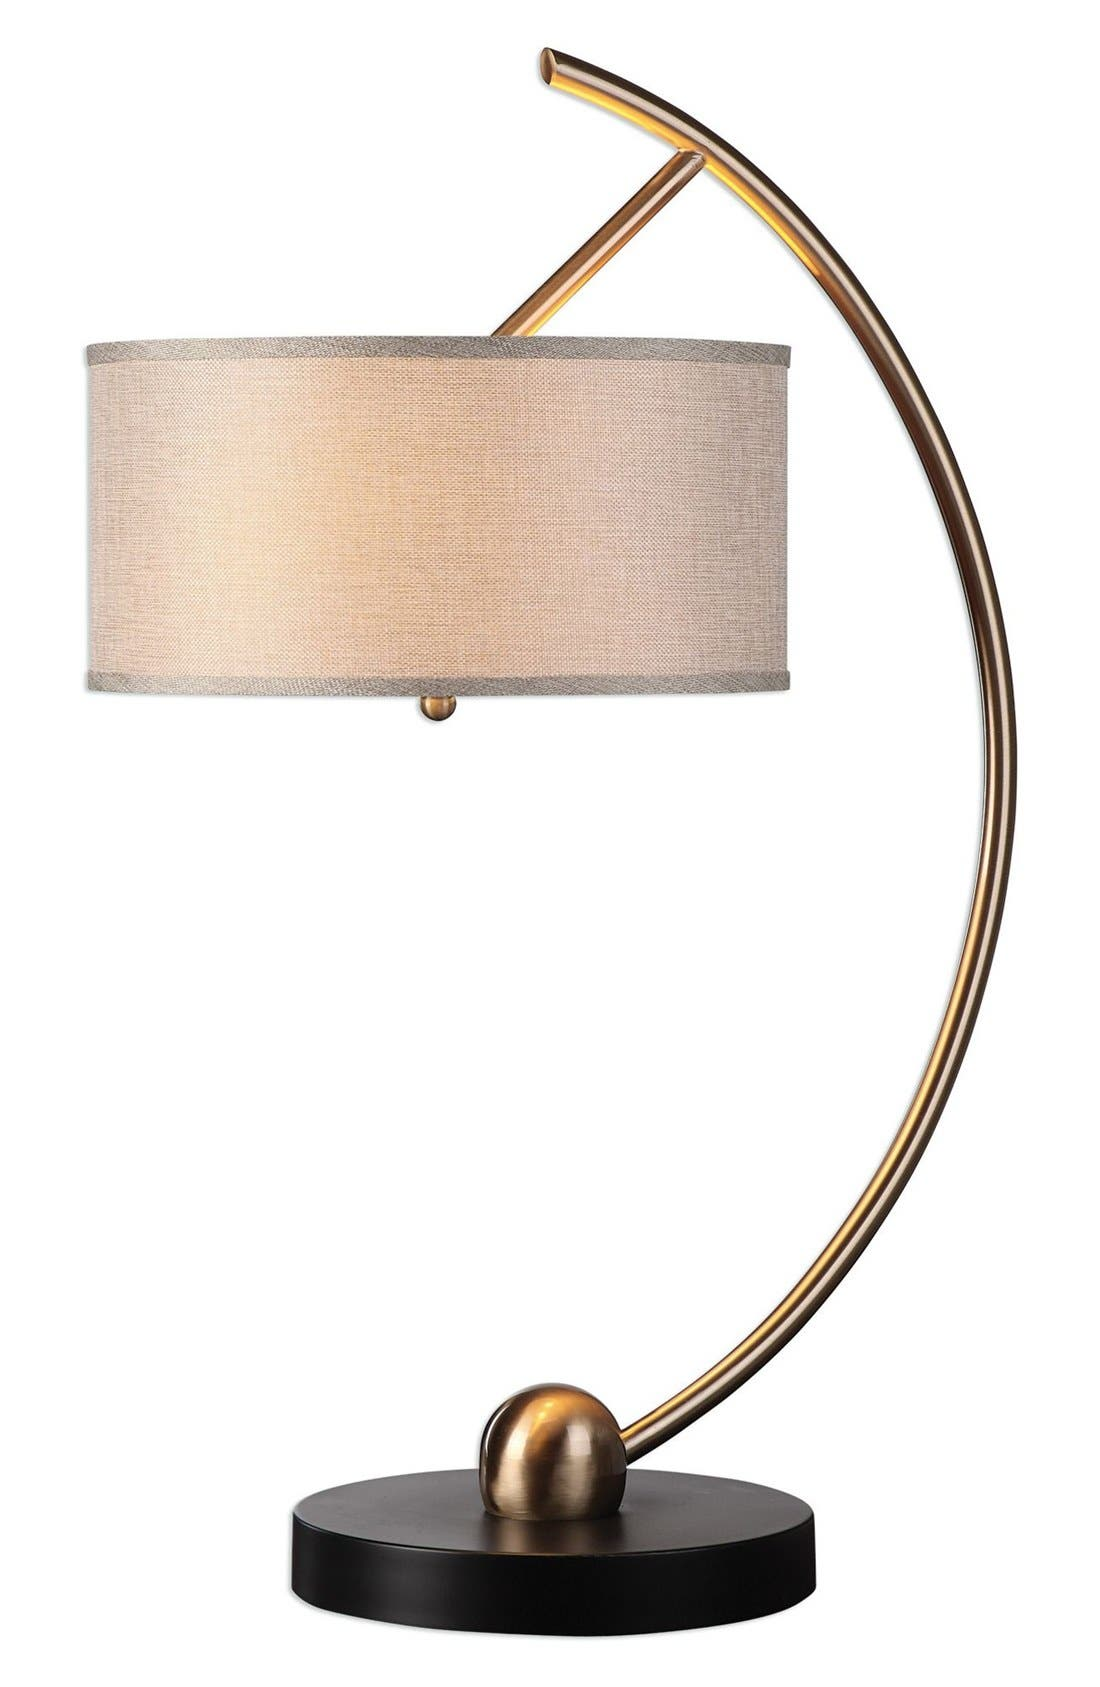 Main Image - Uttermost Curved Brass Table Lamp